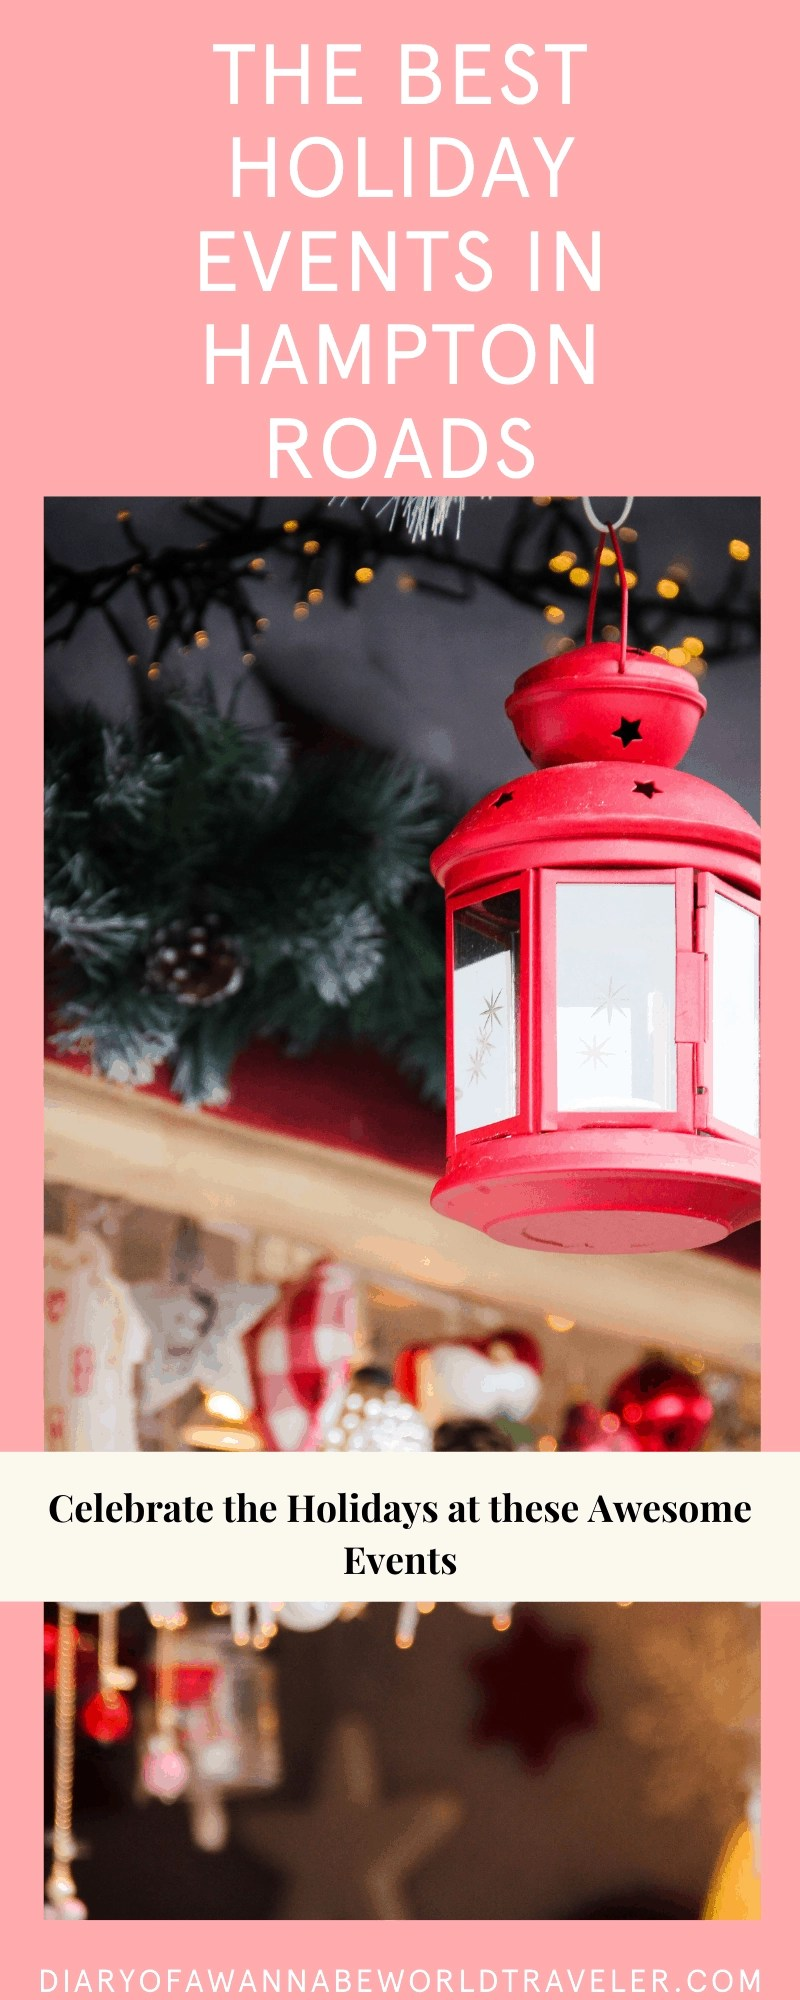 Hampton Roads Christmas Events 2020 Holiday Events in Hampton Roads   Diary of a Wanna Be World Traveler